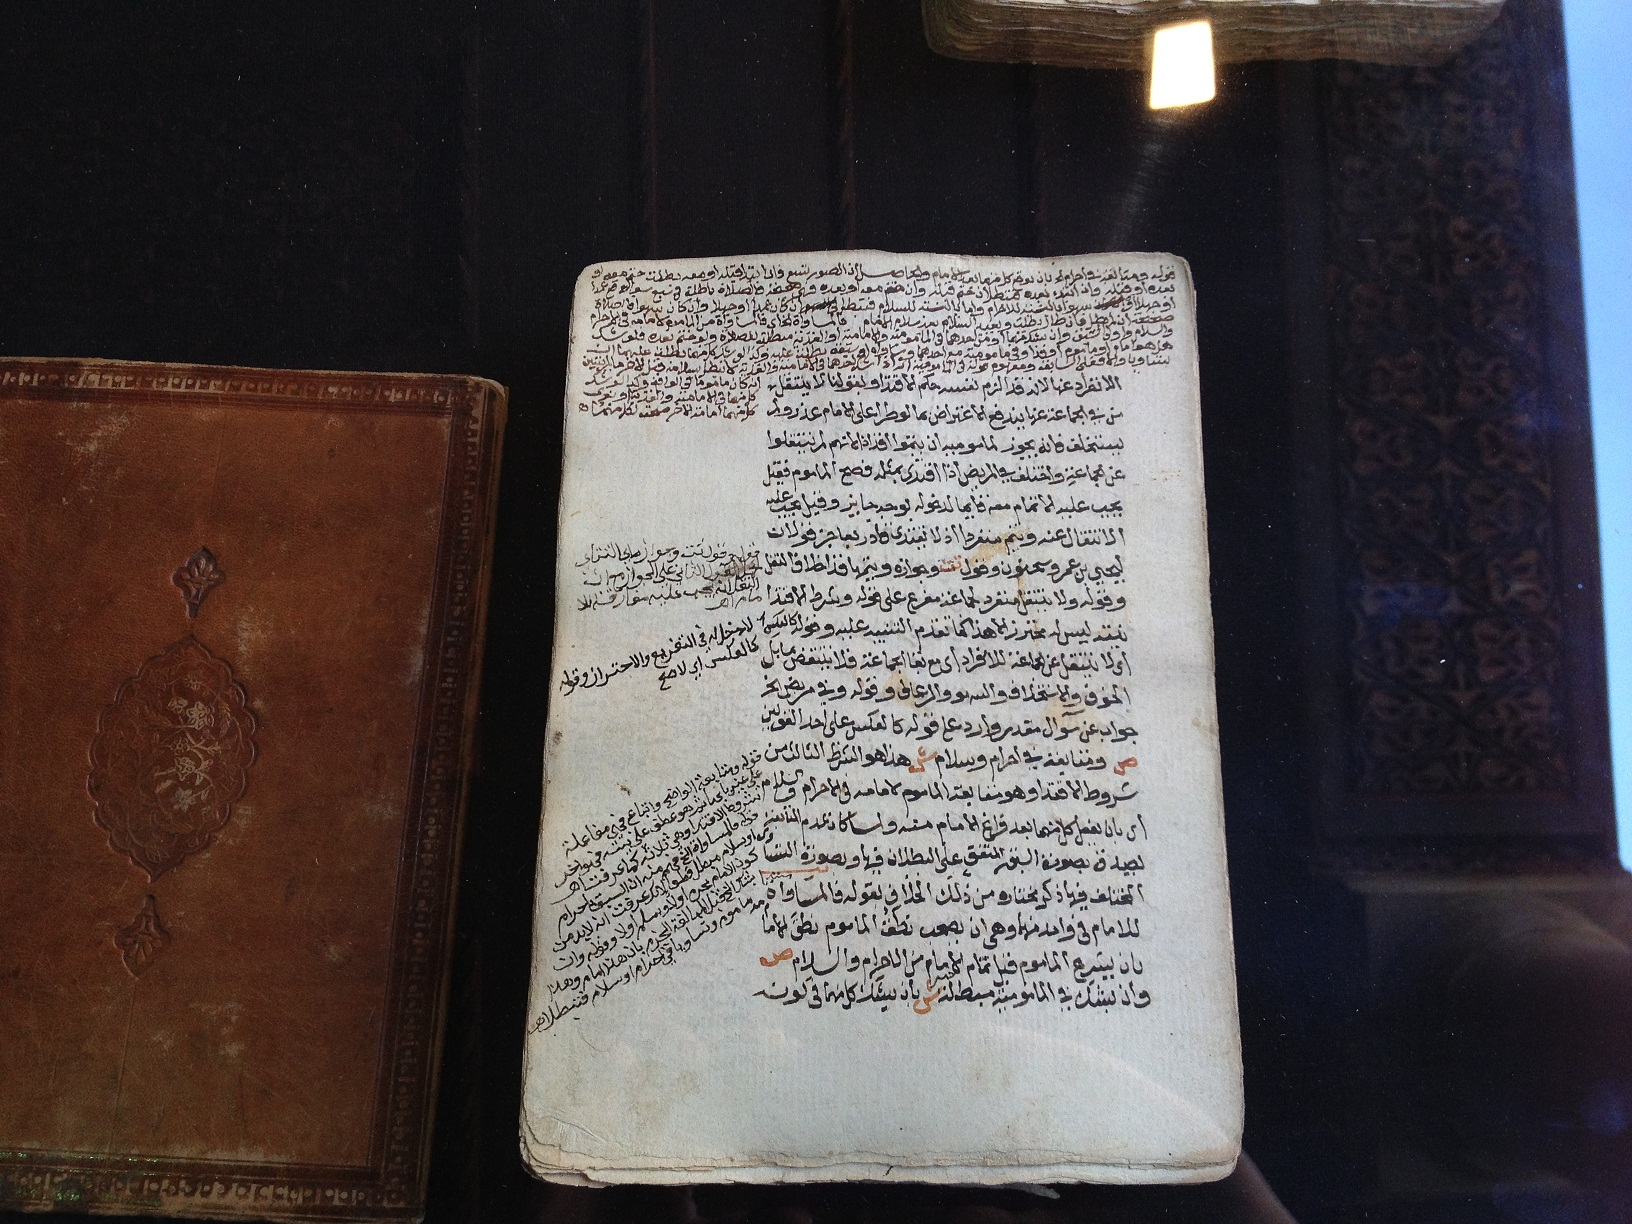 Part one of Al-Khorashi manuscript, one of the exhibited manuscripts which were found in Upper Egypt (Photo by Thoraia Abou Bakr)